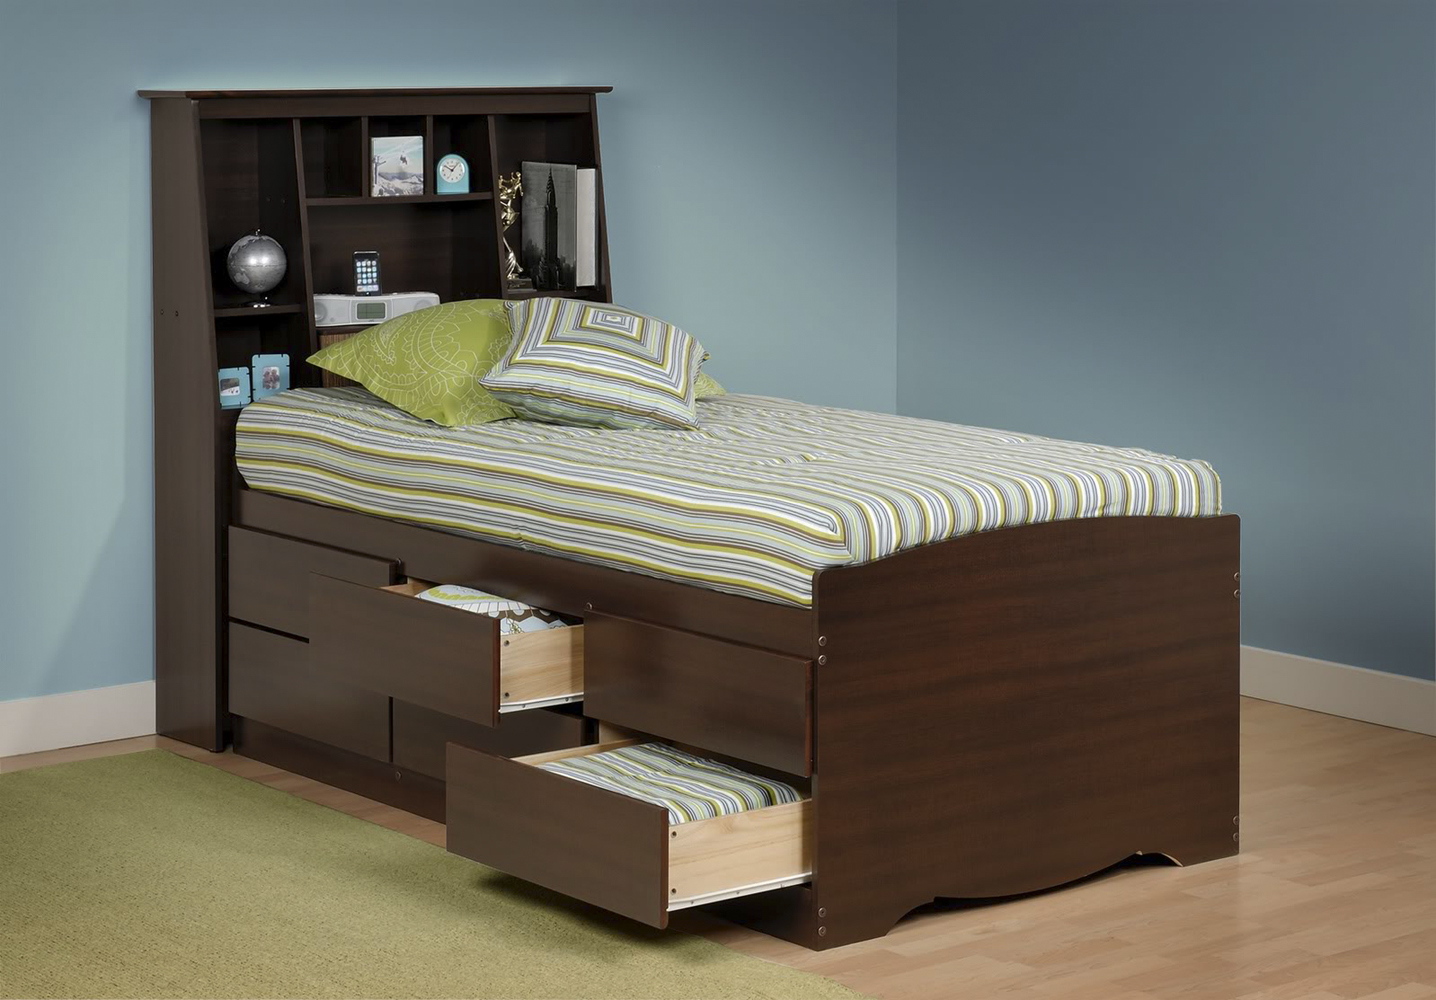 Bedroom Furniture Sets With Mattress Looking For: Bedroom Furniture Set  And Mattress,